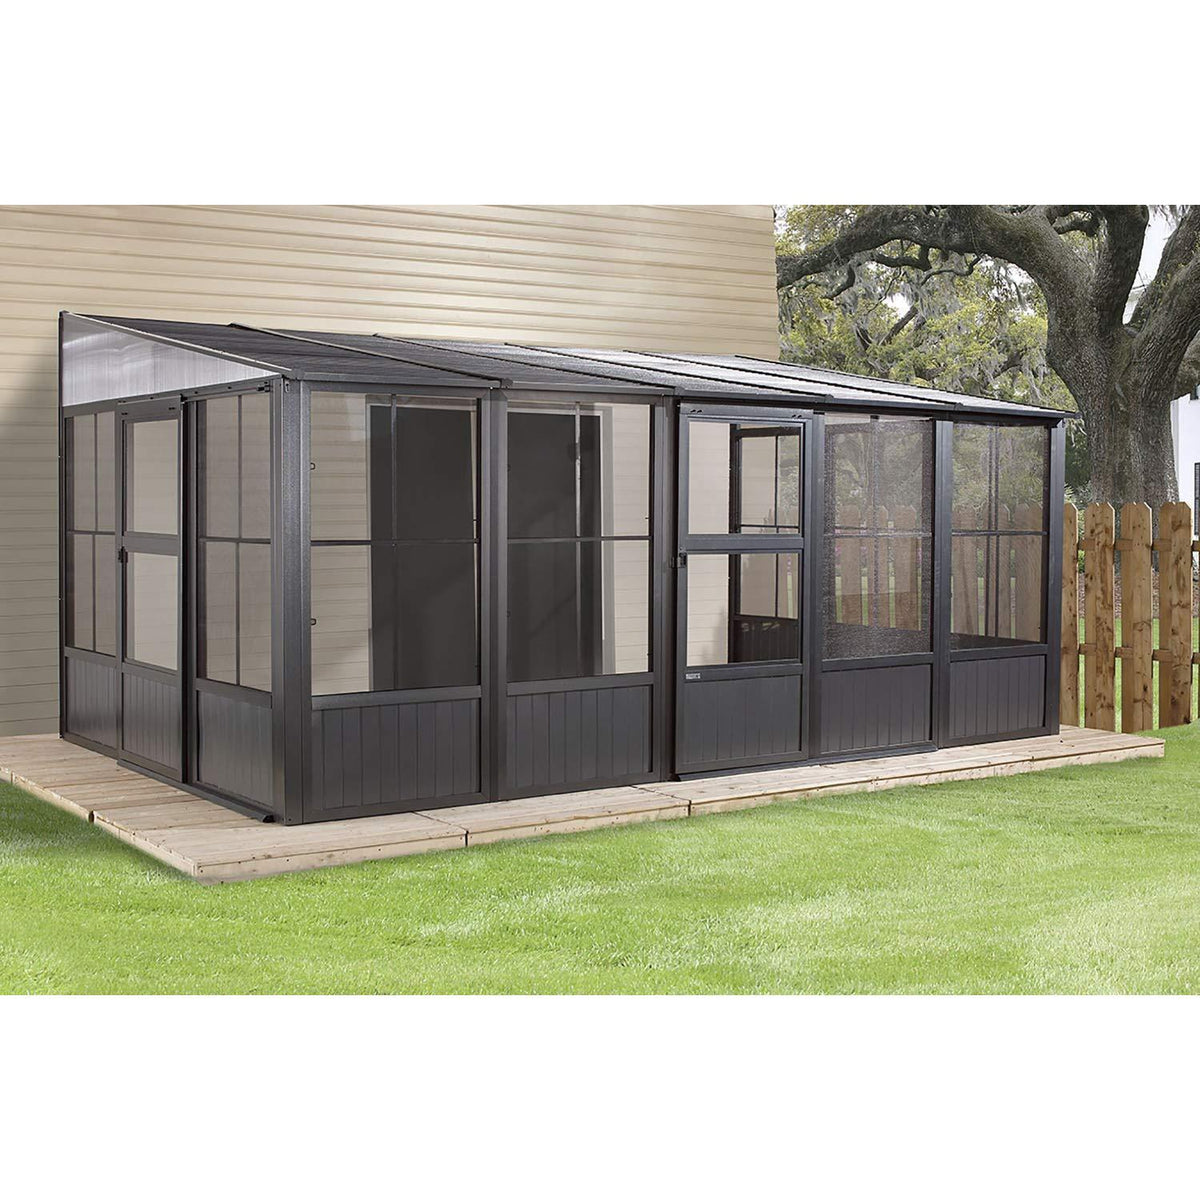 ShelterLogic Charleston 10 X 16 Wall-Mounted Solarium